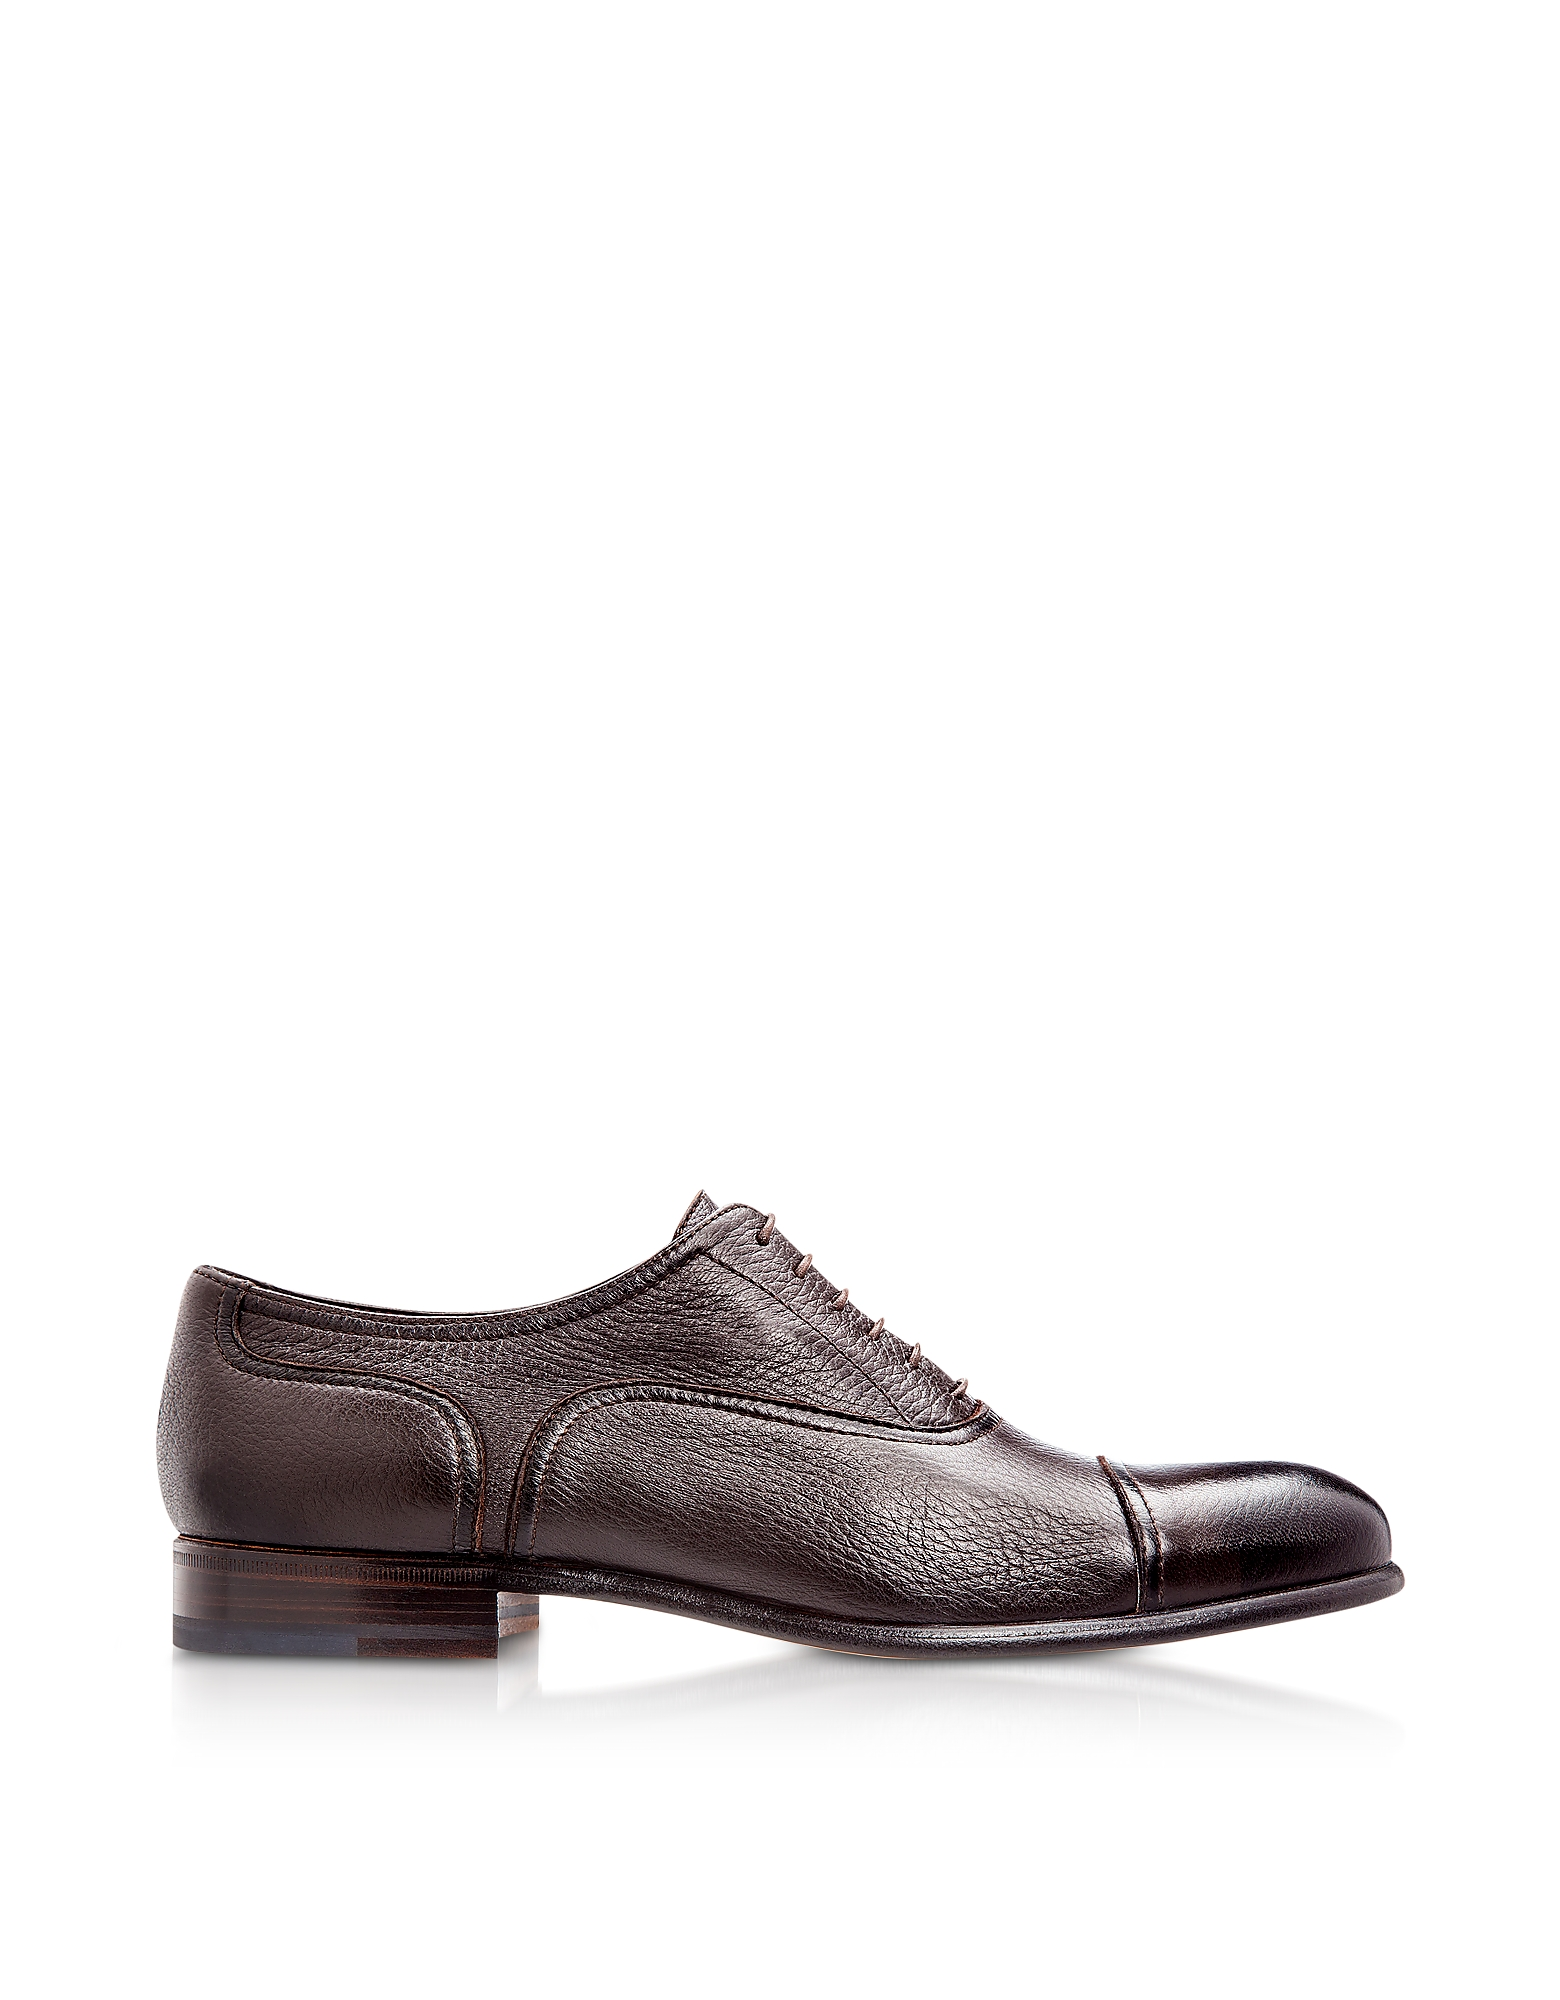 Moreschi Shoes, Nice Dark Brown Deerskin Oxford Shoes